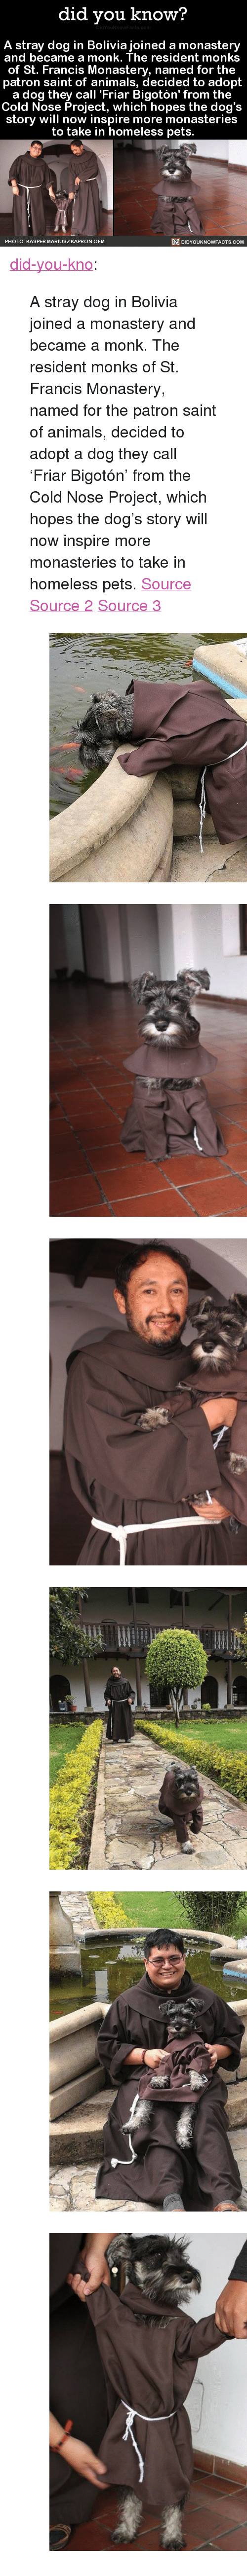 """st francis: did you know?  A stray dog in Bolivia joined a monastery  and became a monk. The resident monks  of St. Francis Monastery, named for the  patron saint of animals, decided to adopt  a dog they call 'Friar Bigotón' from the  Cold Nose Project, which hopes the dog's  story will now inspire more monasteries  to take in homeless pets.  DIDYOUKNOWFACTS.coM  PHOTO: KASPER MARIUSZ KAPRON OFM <p><a href=""""http://didyouknowblog.com/post/158214202418/a-stray-dog-in-bolivia-joined-a-monastery-and"""" class=""""tumblr_blog"""">did-you-kno</a>:</p>  <blockquote><p>A stray dog in Bolivia joined a monastery and became a monk. The resident monks of St. Francis Monastery, named for the patron saint of animals, decided to adopt a dog they call 'Friar Bigotón' from the Cold Nose Project, which hopes the dog's story will now inspire more monasteries to take in homeless pets. <span><a href=""""https://www.thedodo.com/monastery-adopts-friar-dog-2303203254.html"""">Source</a></span> <span><a href=""""https://www.facebook.com/kasper.kapronofm/media_set?set=a.1478968562127882.1073742169.100000442572550&amp;type=3"""">Source 2</a></span> <span><a href=""""http://www.humanesociety.org/about/departments/faith/francis_files/st_francis_of_assisi.html"""">Source 3</a></span></p><figure class=""""tmblr-full"""" data-orig-height=""""506"""" data-orig-width=""""482""""><img src=""""https://78.media.tumblr.com/808be0a6c45756f28c2b9178b8582561/tumblr_inline_omk5gaQPKC1sjh1ps_540.jpg"""" data-orig-height=""""506"""" data-orig-width=""""482""""/></figure><figure data-orig-width=""""582"""" data-orig-height=""""683"""" class=""""tmblr-full""""><img src=""""https://78.media.tumblr.com/3f3b79c338cf6032143eea214f94d01c/tumblr_inline_omj6snITtN1qdd173_540.png"""" alt=""""image"""" data-orig-width=""""582"""" data-orig-height=""""683""""/></figure><figure data-orig-width=""""563"""" data-orig-height=""""691"""" class=""""tmblr-full""""><img src=""""https://78.media.tumblr.com/6d18b9a1a91e5f3a5a22aeab5f1596d8/tumblr_inline_omj6so6iWg1qdd173_540.png"""" alt=""""image"""" data-orig-width=""""563"""" data-orig-height=""""691""""/></figure><figure """